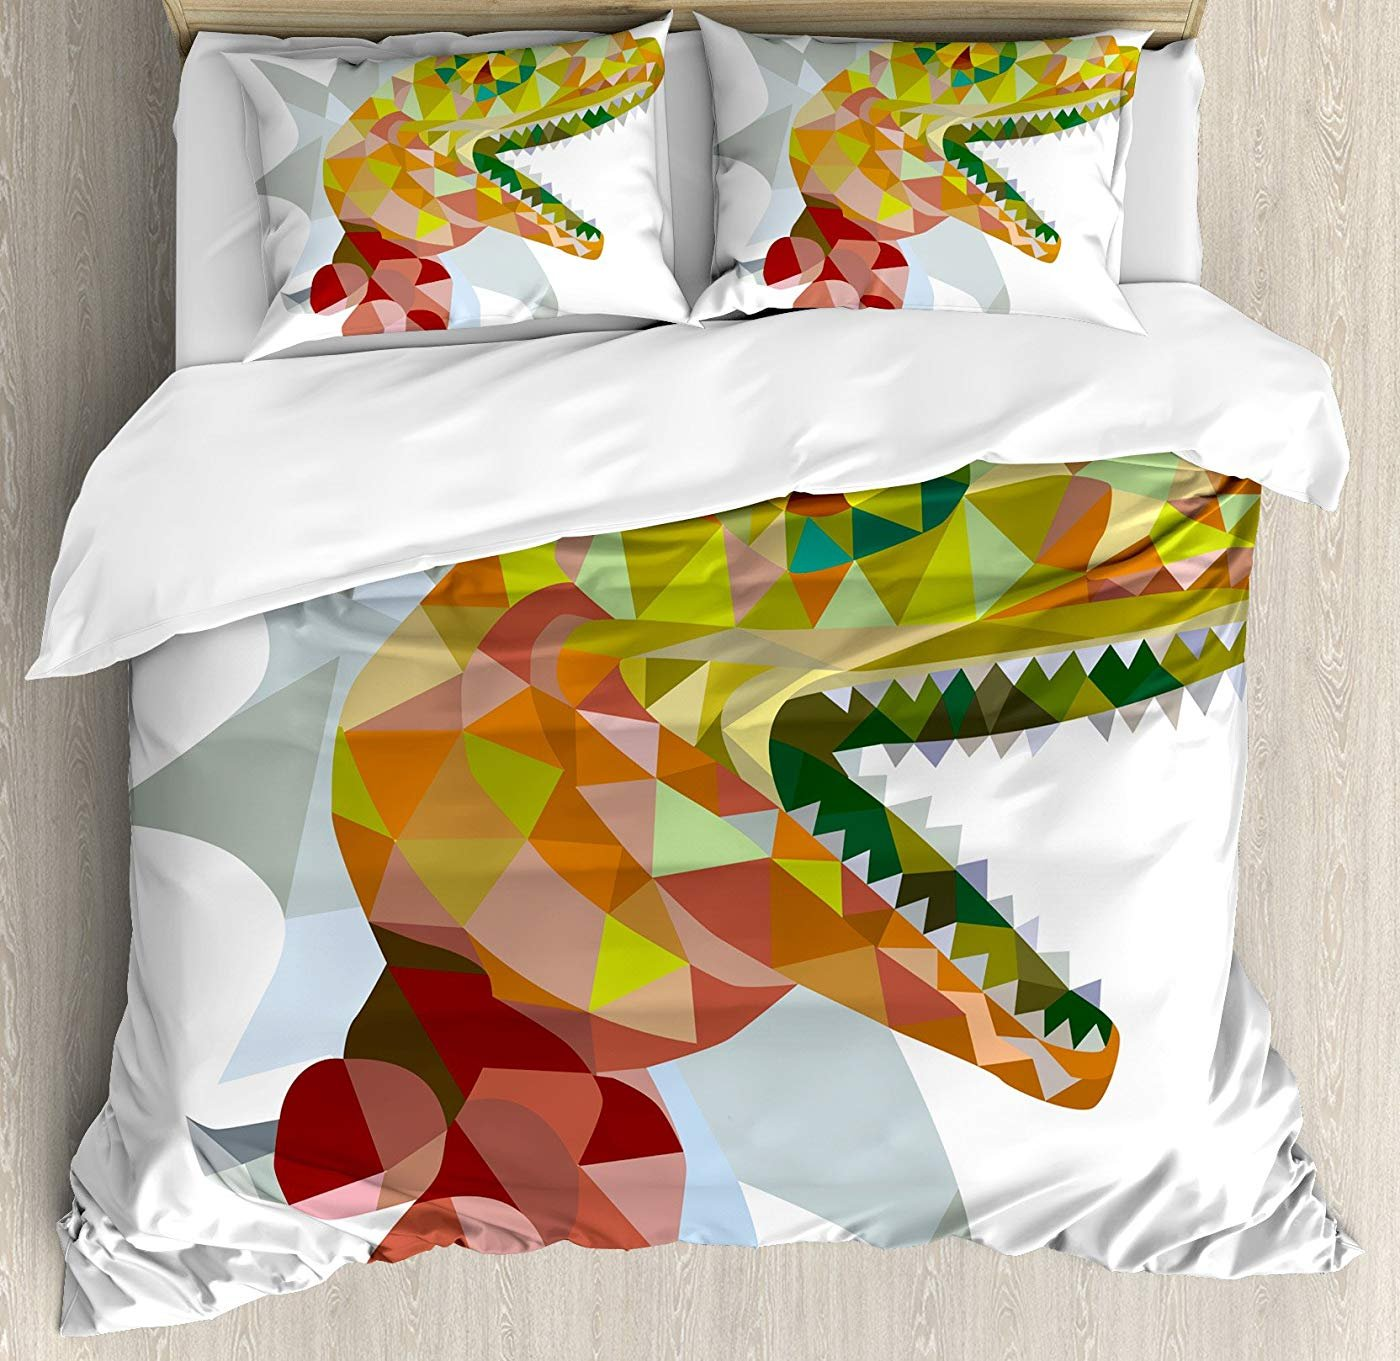 Multi 5 Queen Pride Decorations Duvet Cover Set Twin Size, LGBT Slogan with Stylized Writing Cute Unicorn Character Rainbow Tail,Lightweight Microfiber Duvet Cover Sets, Multicolor